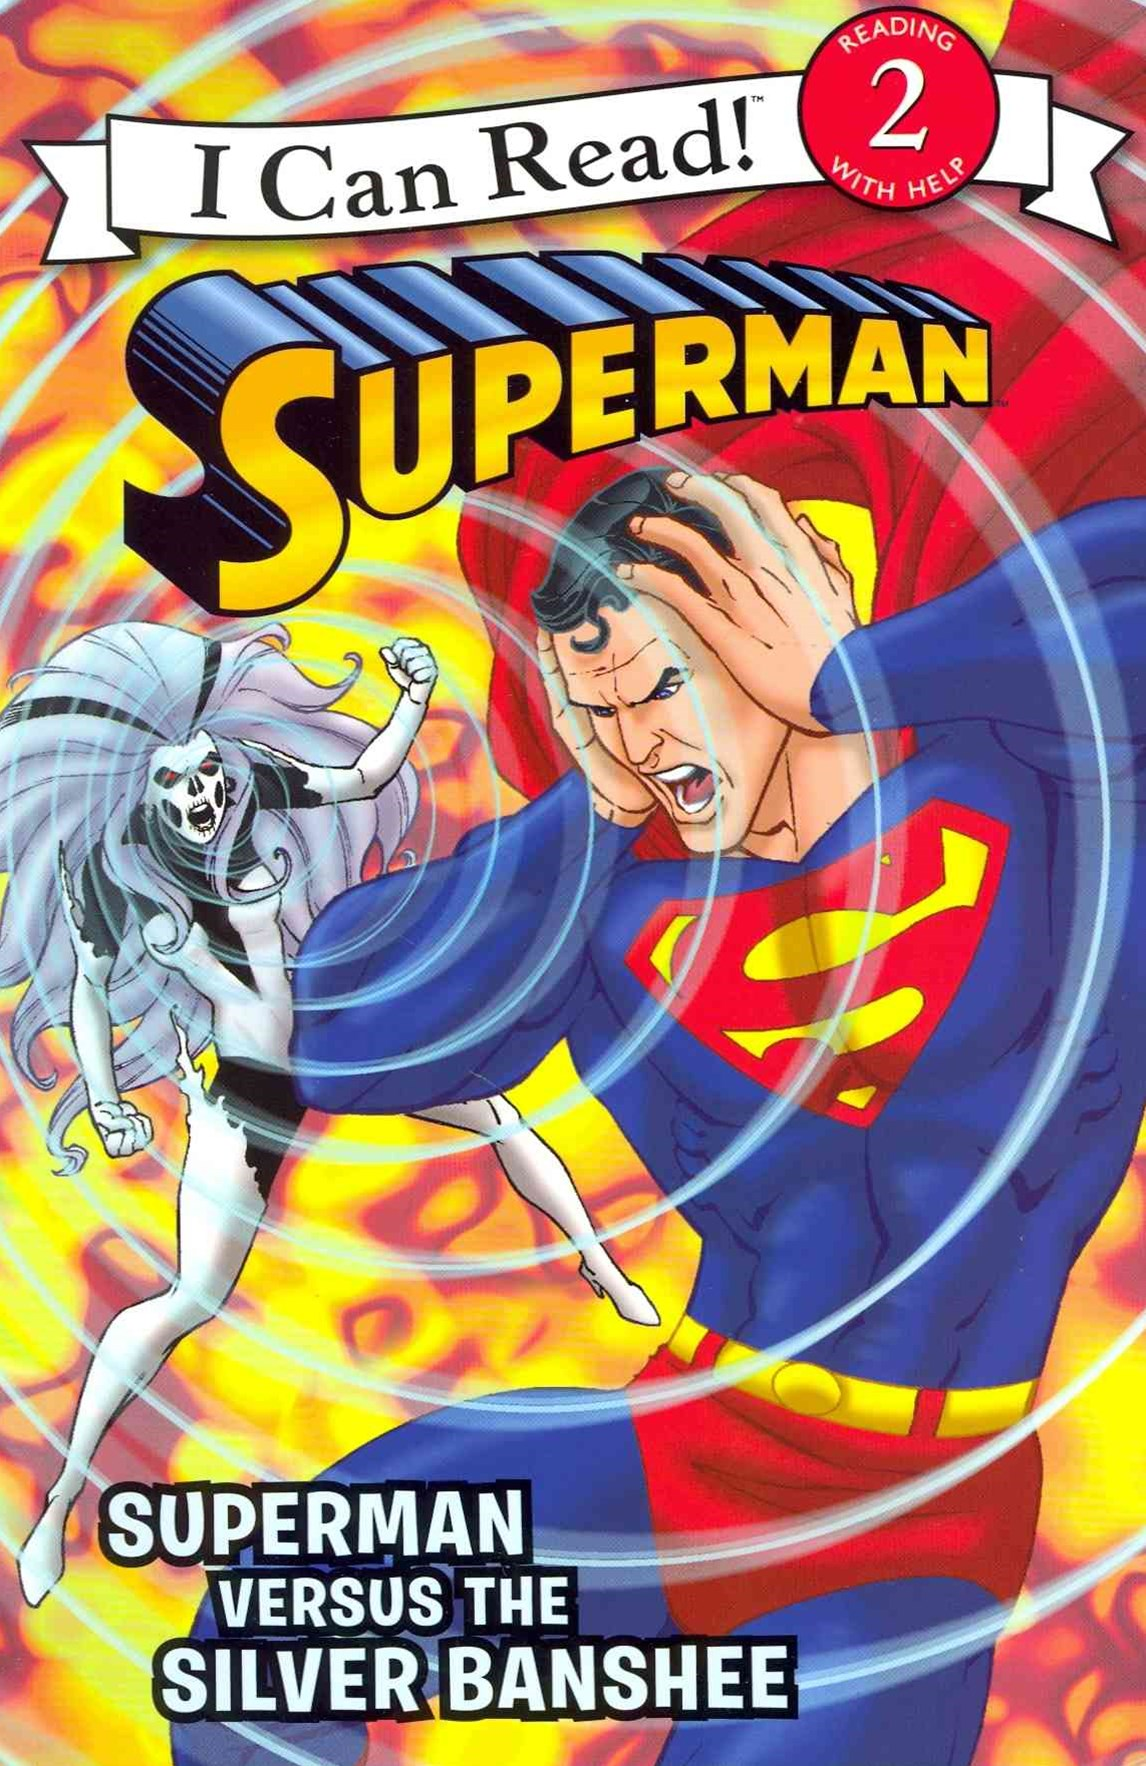 Superman vs. the Silver Banshee